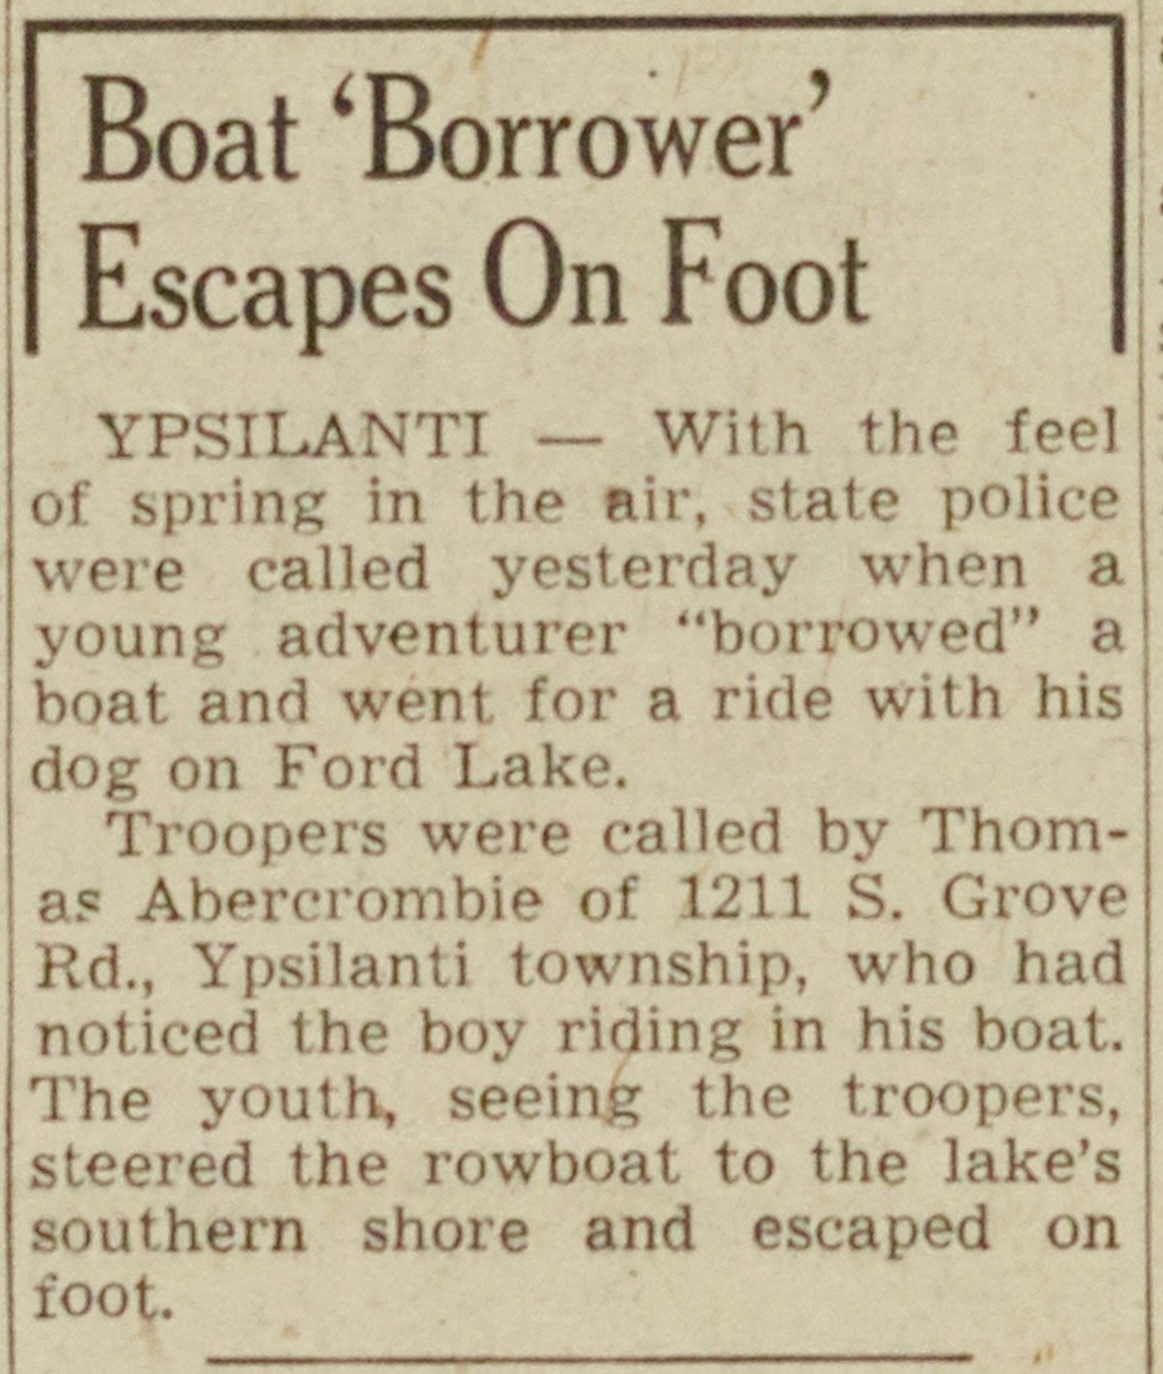 Boat 'Borrower' Escapes On Foot image